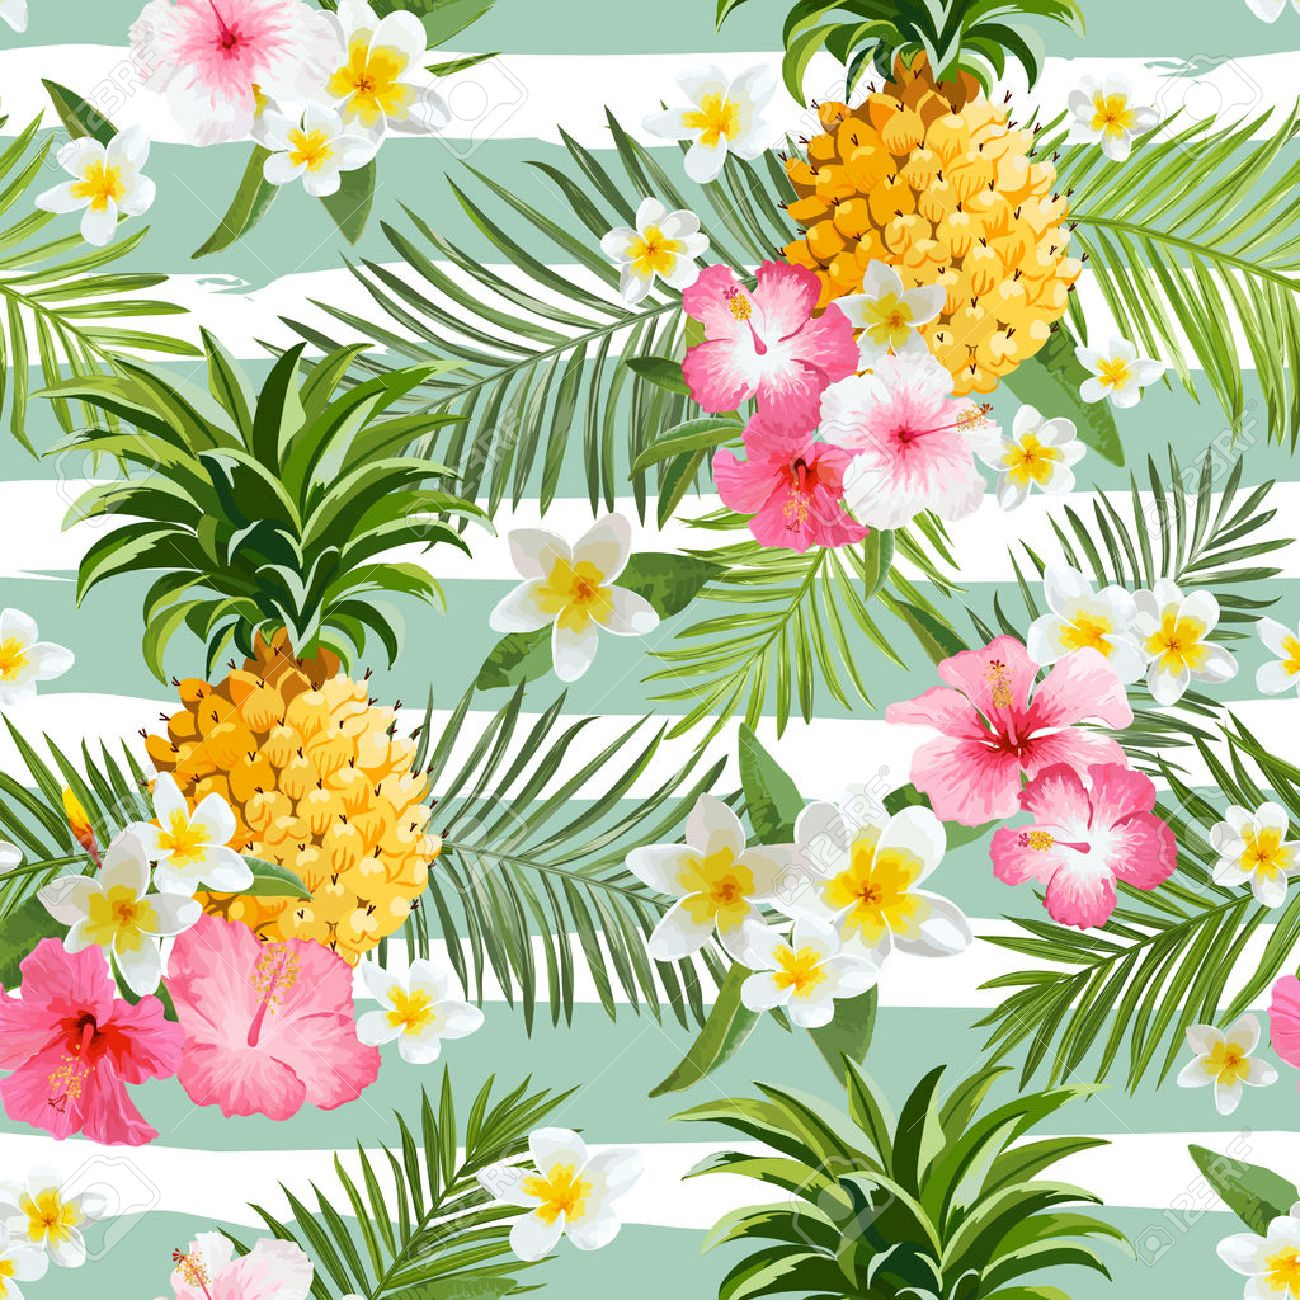 Pineapples and Tropical Flowers Geometry Background - Vintage Seamless Pattern - 53446383